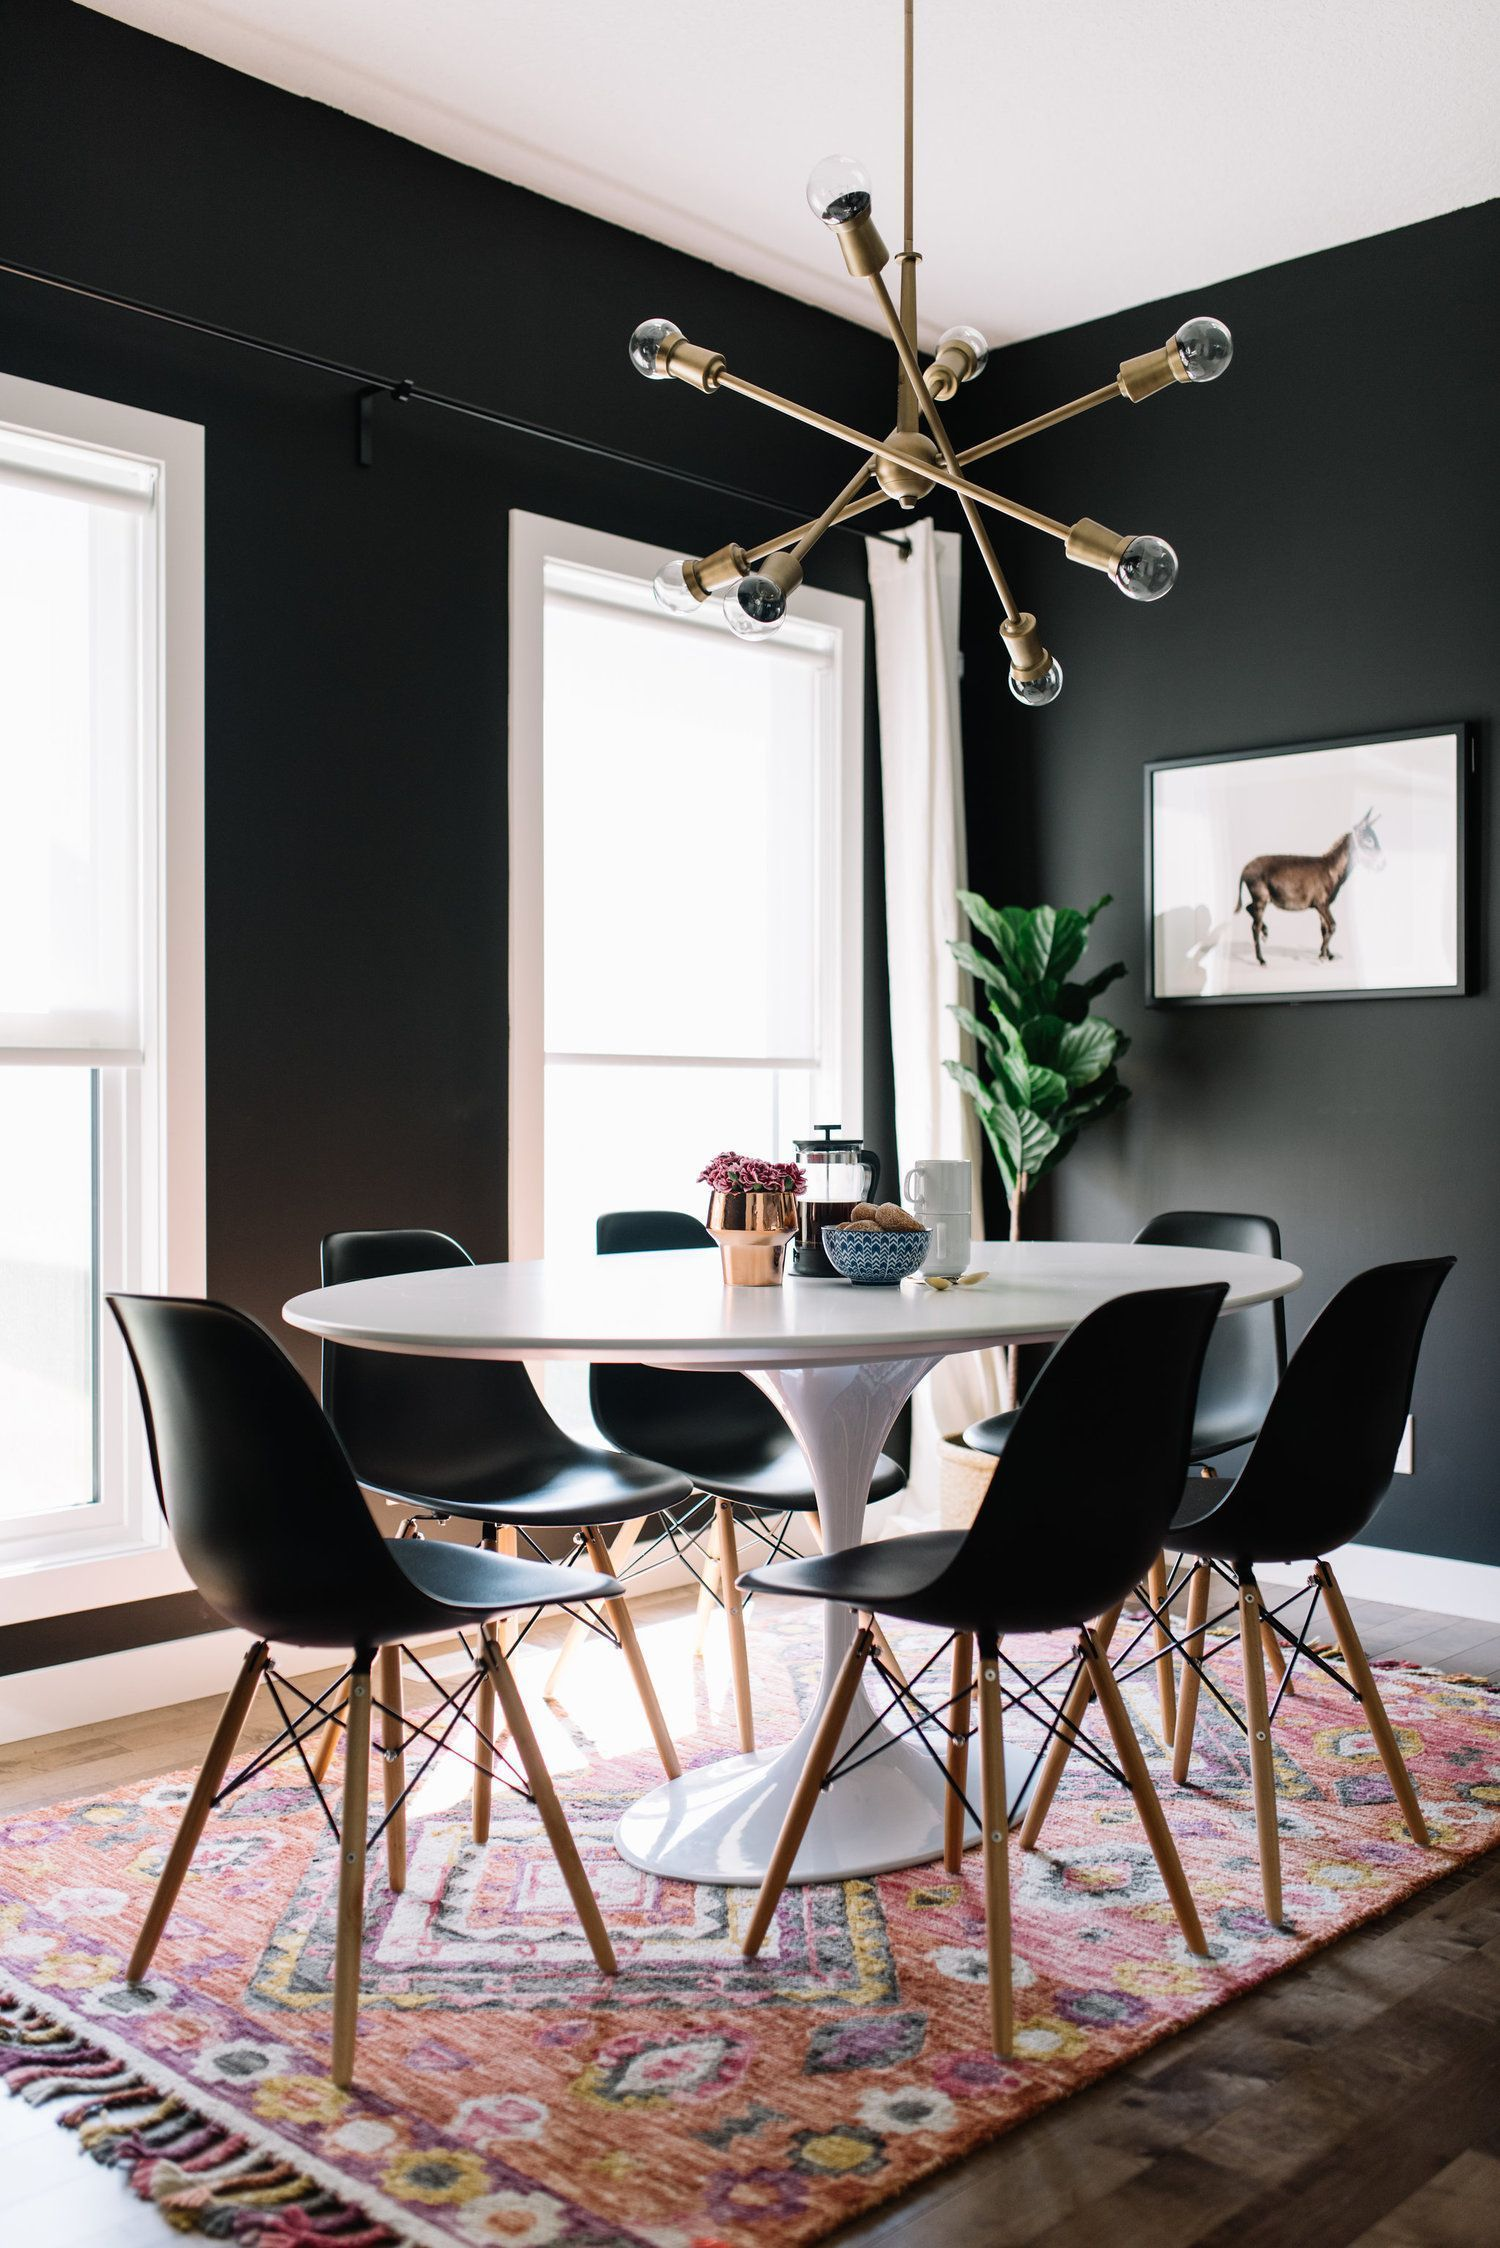 Hey, That's My House! | Home Fab | Mid century modern ...